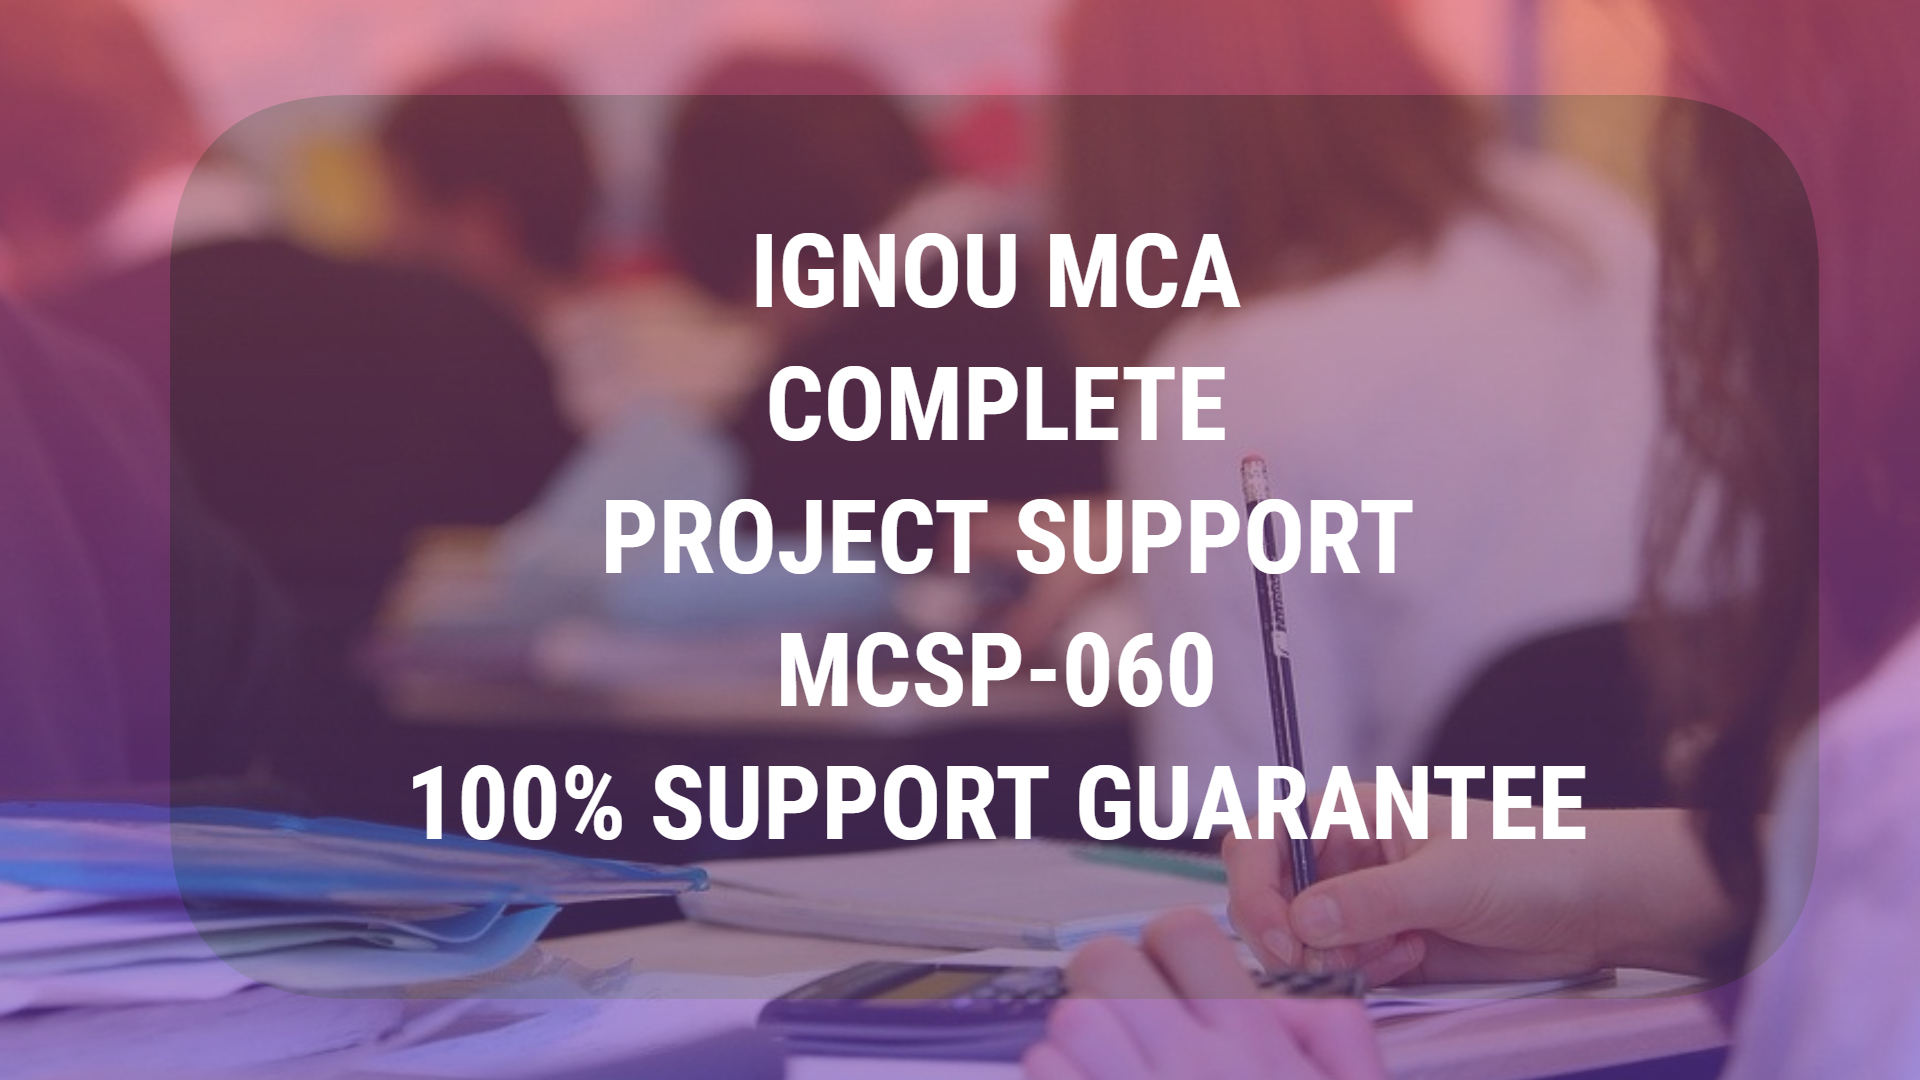 IGNOU MCA PROJECT COMPLETE SUPPORT - MCSP060